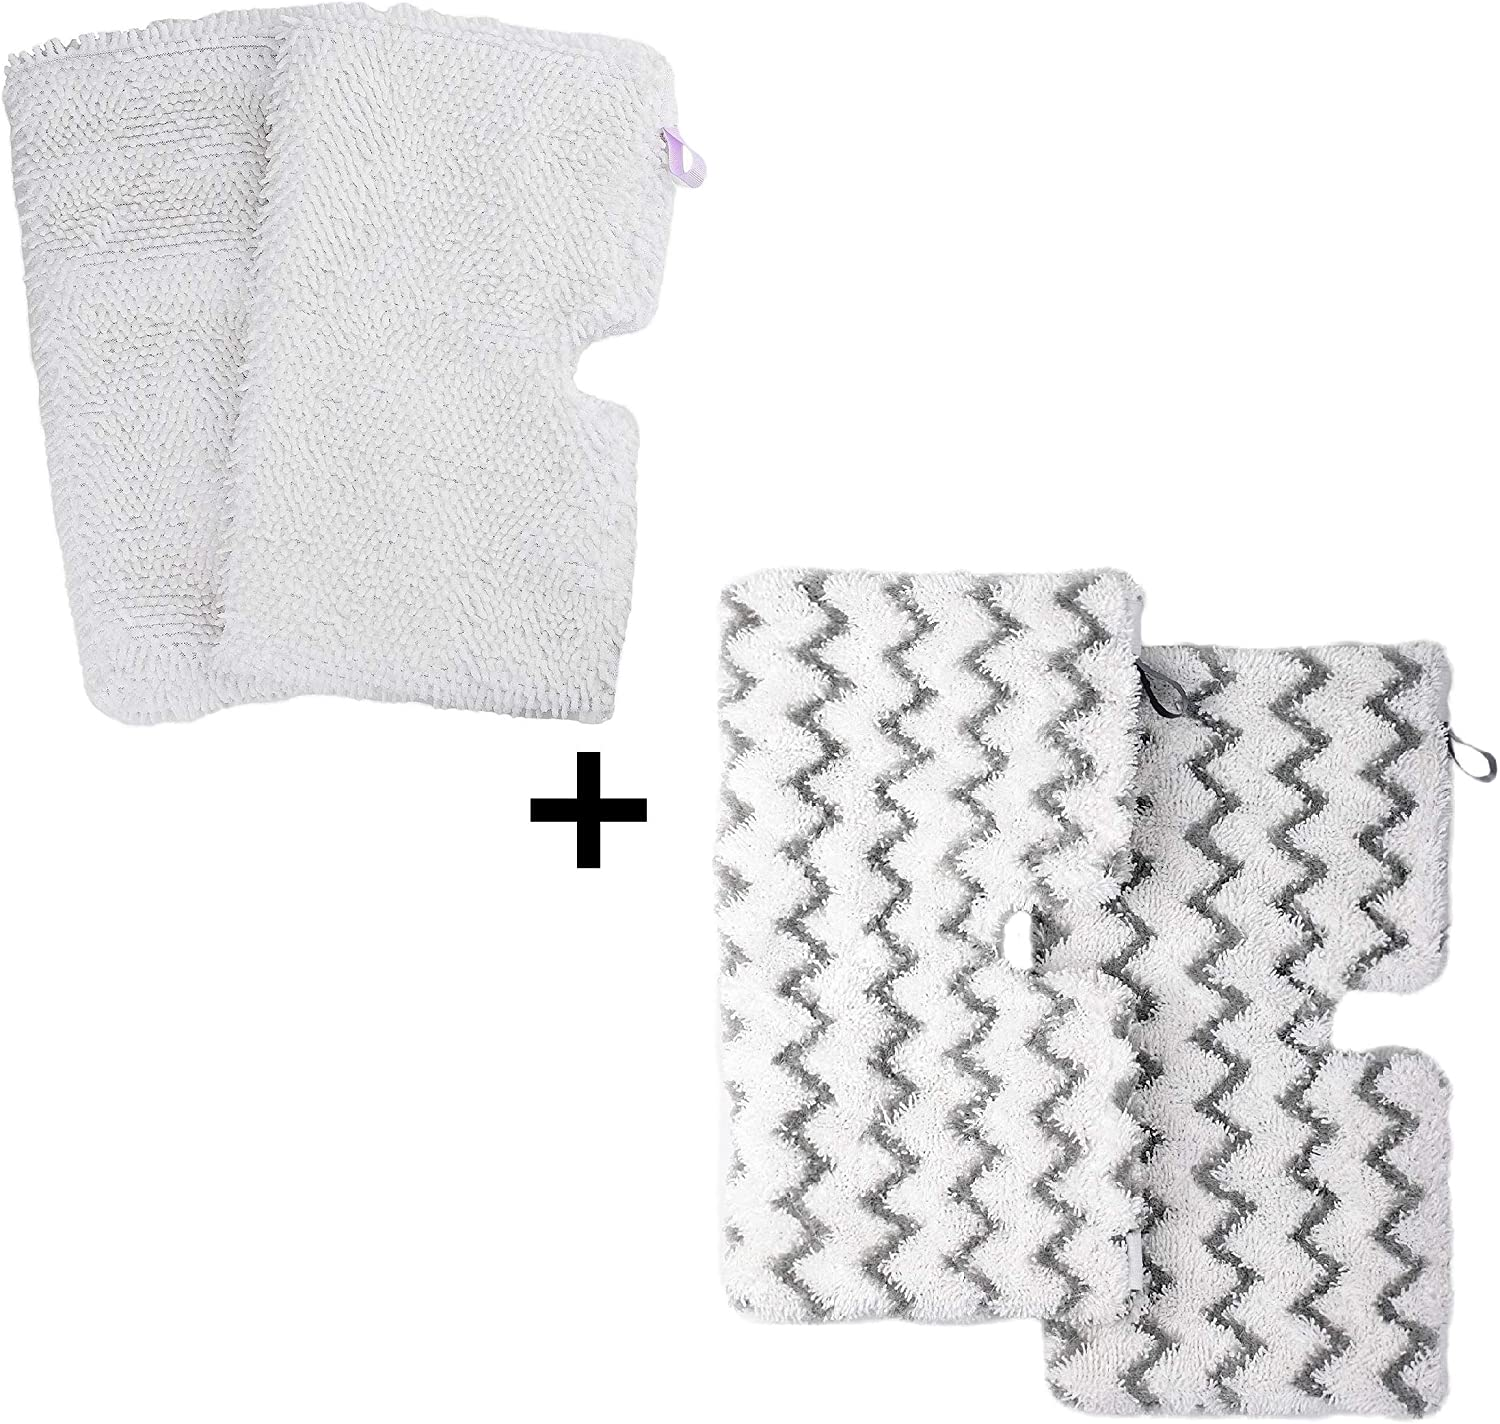 F Flammi 2 Pack + 2 Pack Replacement Microfiber Mop Pad for Shark Steam Pocket Mops S3500 Series S3501 S3601 S3550 S3901 S3801 SE450 S3801CO S3601D (2 Soft mop pad+2 scrubby mop pad)